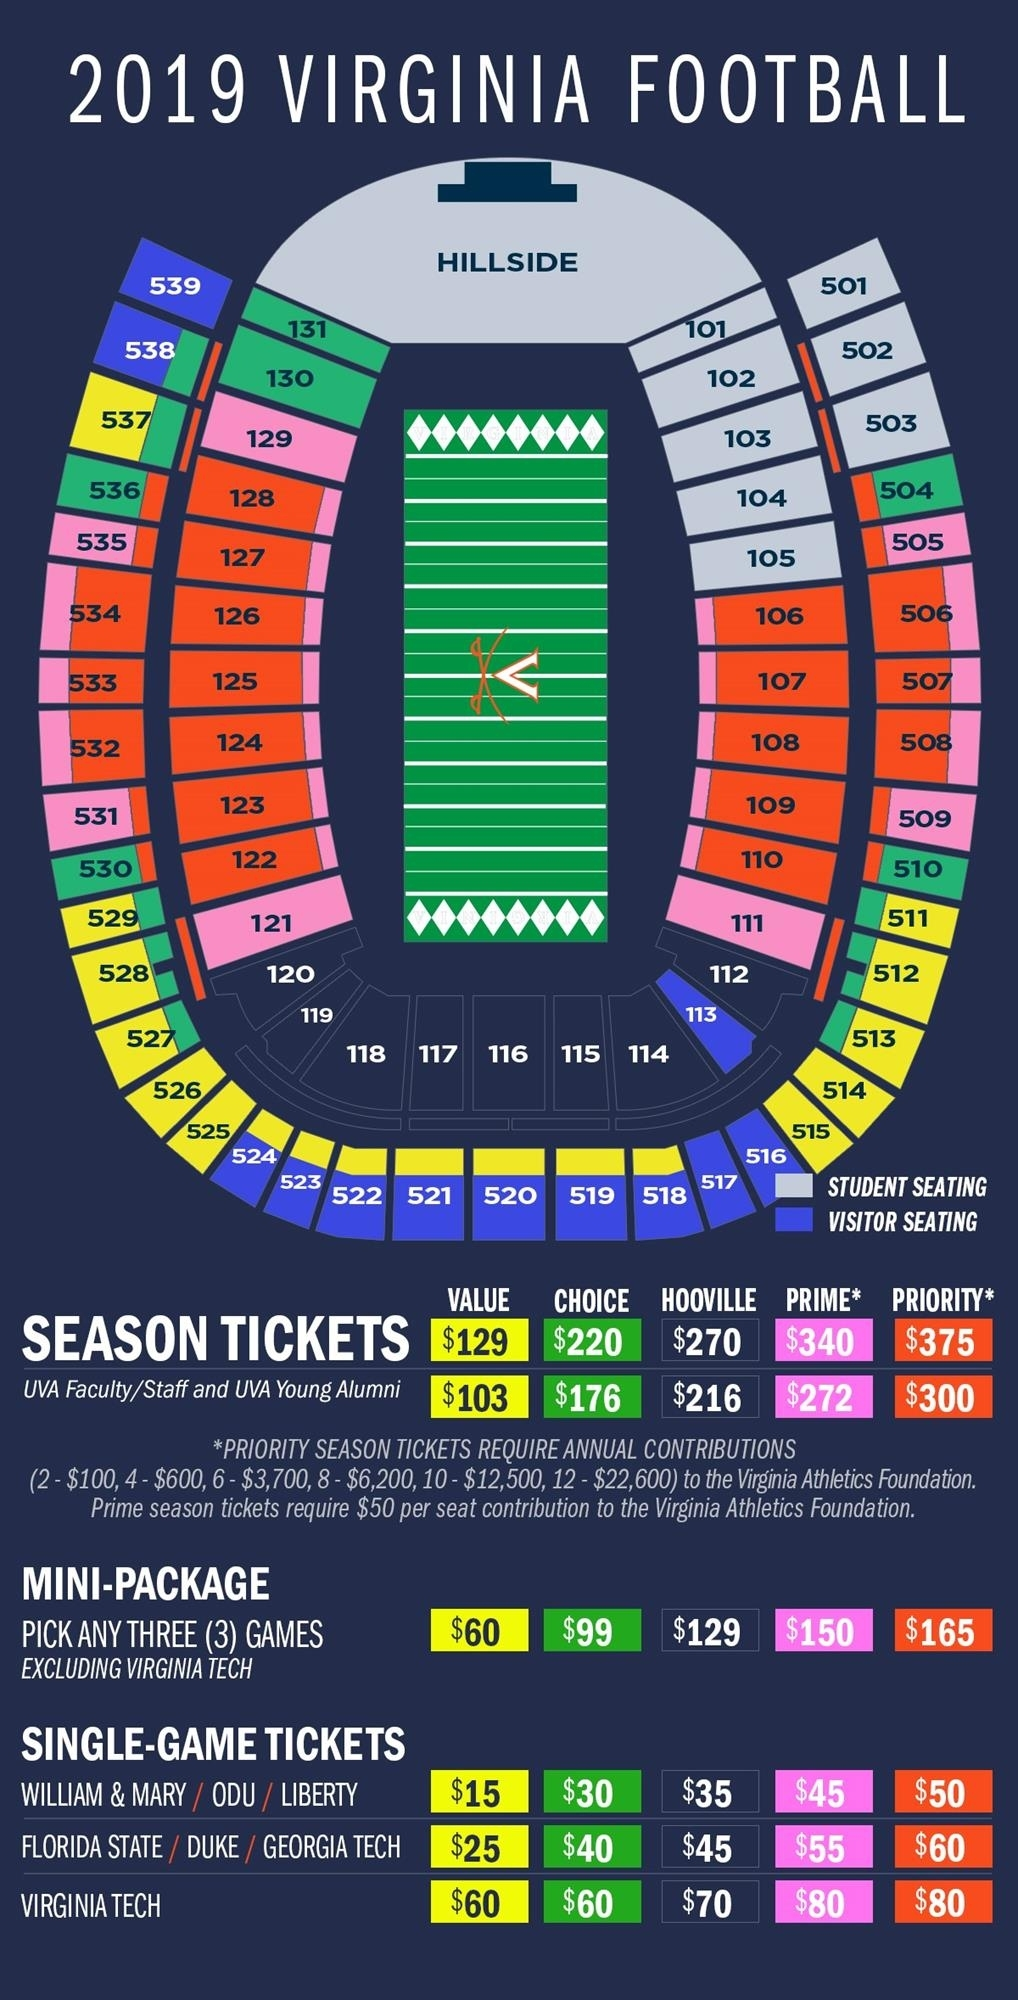 2019 Football Ticket Information - University Of Virginia inside Super Bowl Stadium 2019 Seating Chart